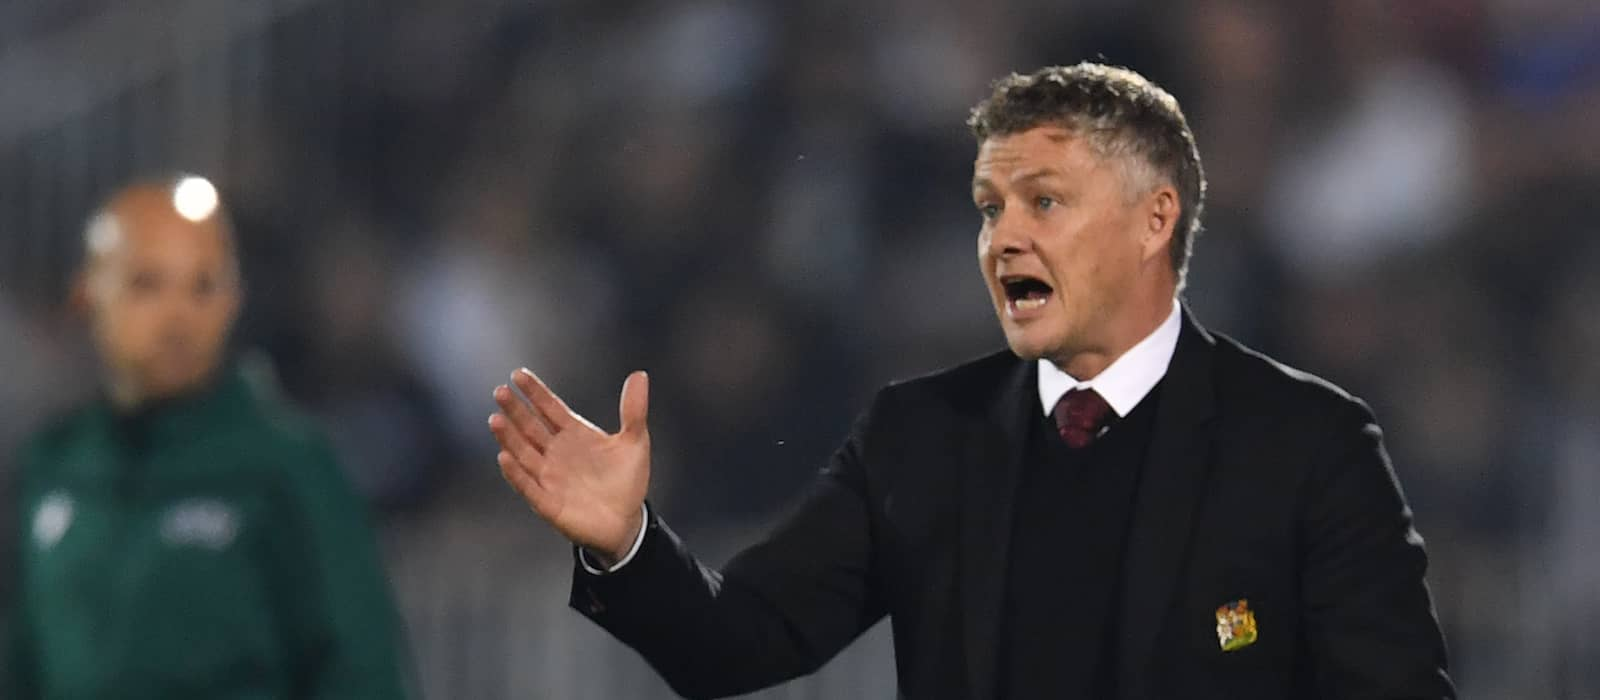 Ole Gunnar Solskjaer justifies decision to play youngsters despite poor results